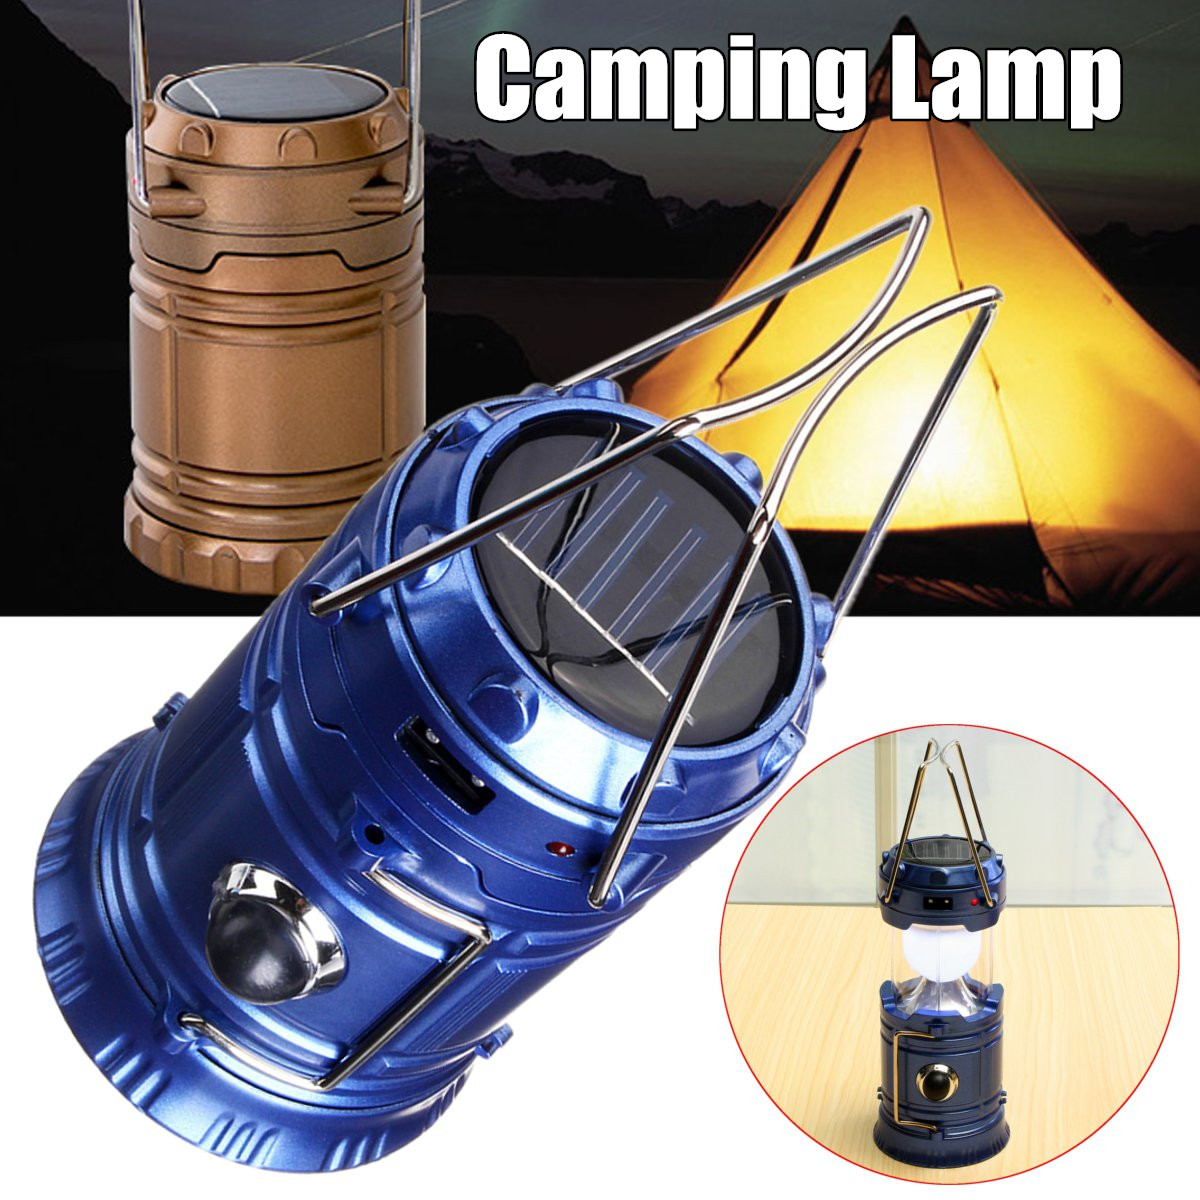 New Solar Camping Lantern Lamp Portable Outdoor Rechargeable LED Tent Hiking (Flashlight Accessories)